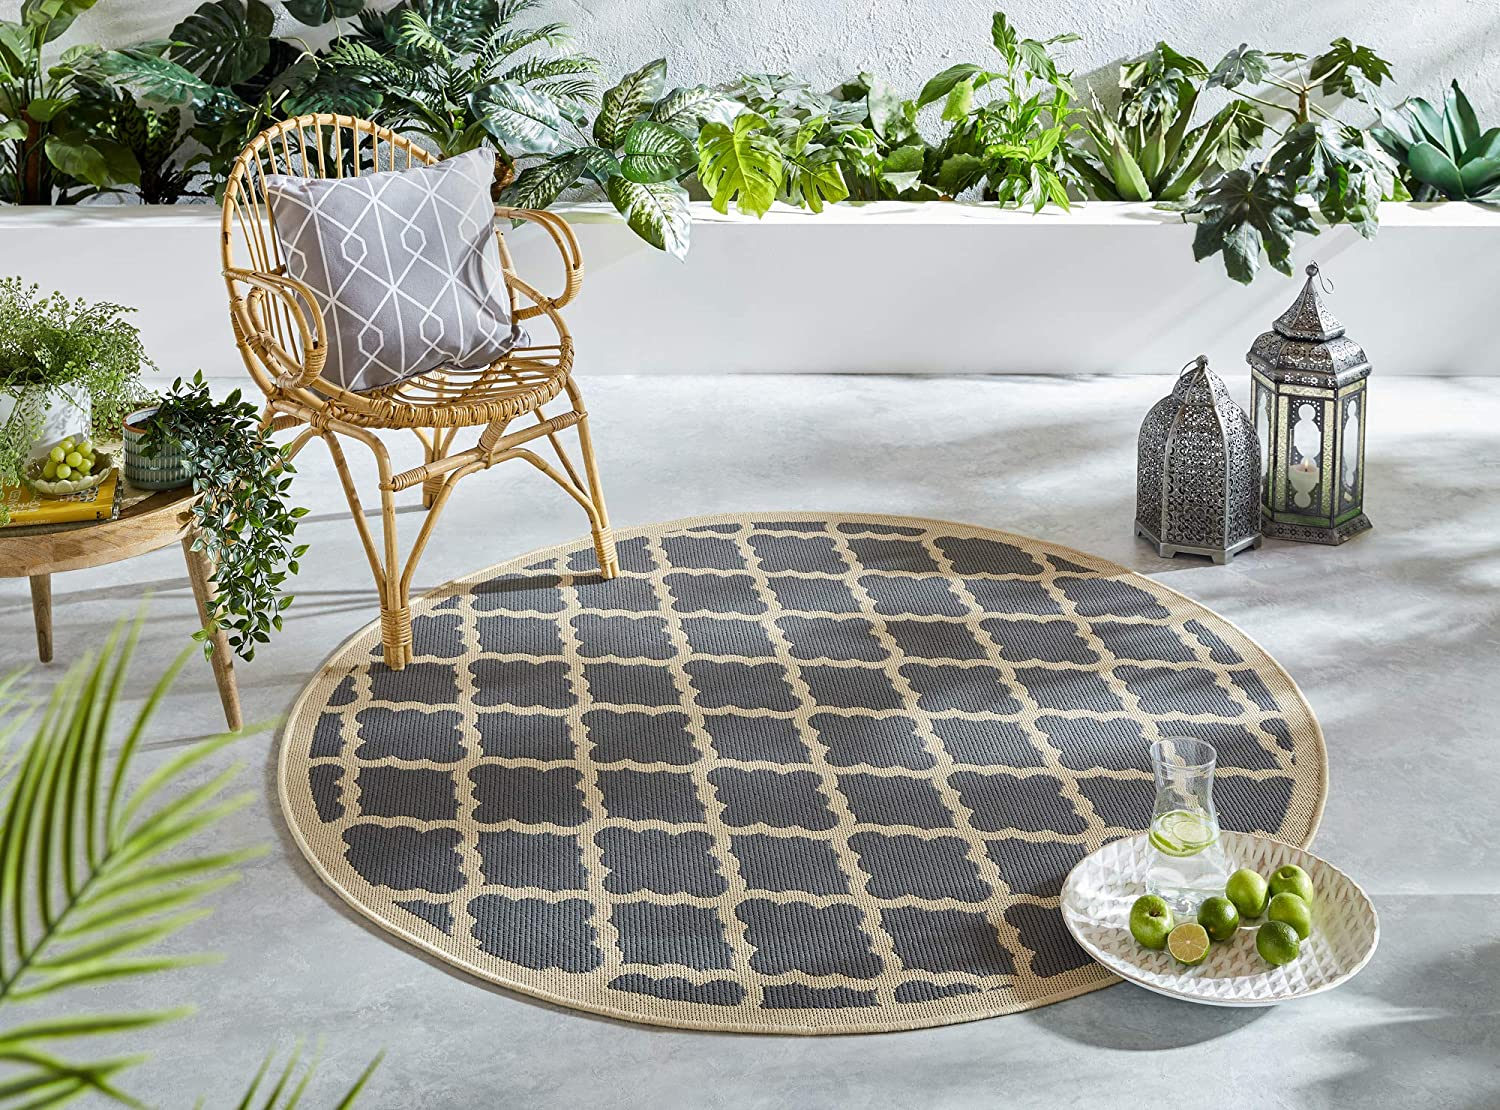 Lord Of Rugs Florence Alfresco Padua Geometric Pattern Flatweave Outdoor And Indoor Rug Beige Anthracite 160x160 Cm 5 3 X5 3 Round Amazon Co Uk Kitchen Home